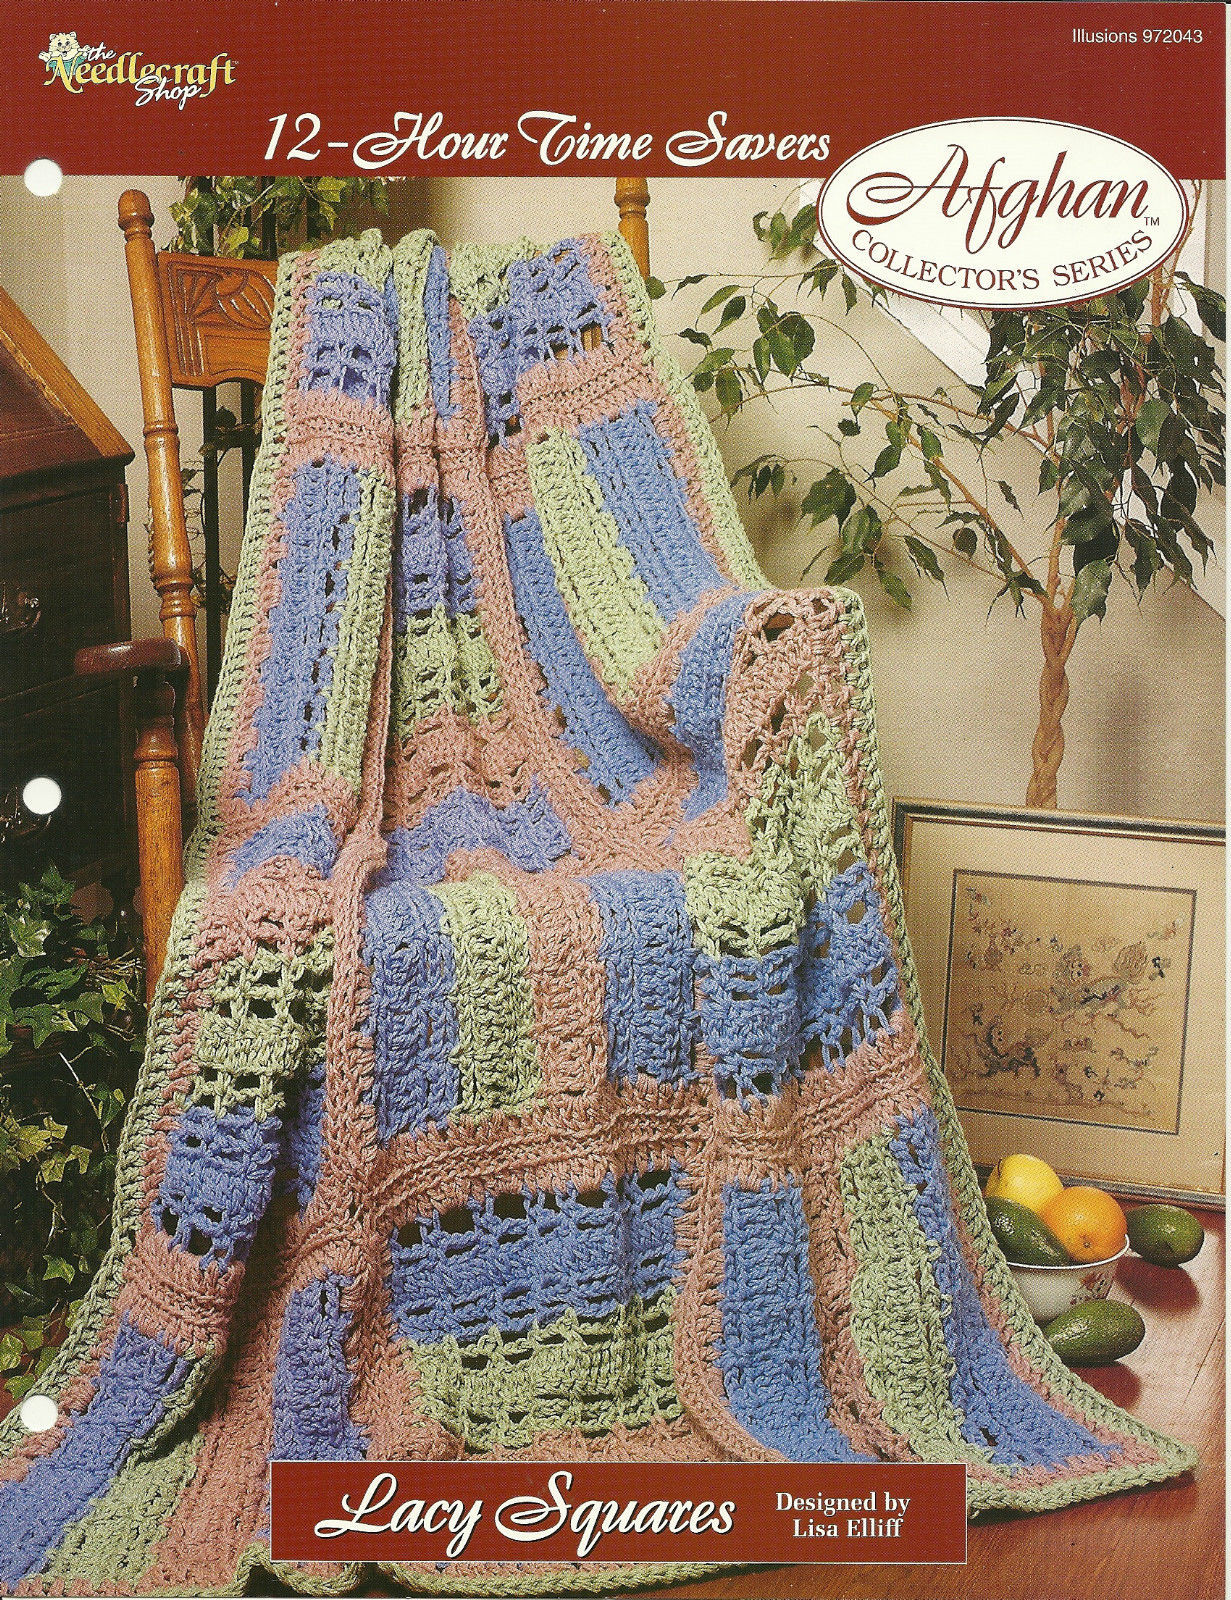 Needlecraft Shop Crochet Pattern 972043 Lacy Squares Afghan Collectors Series